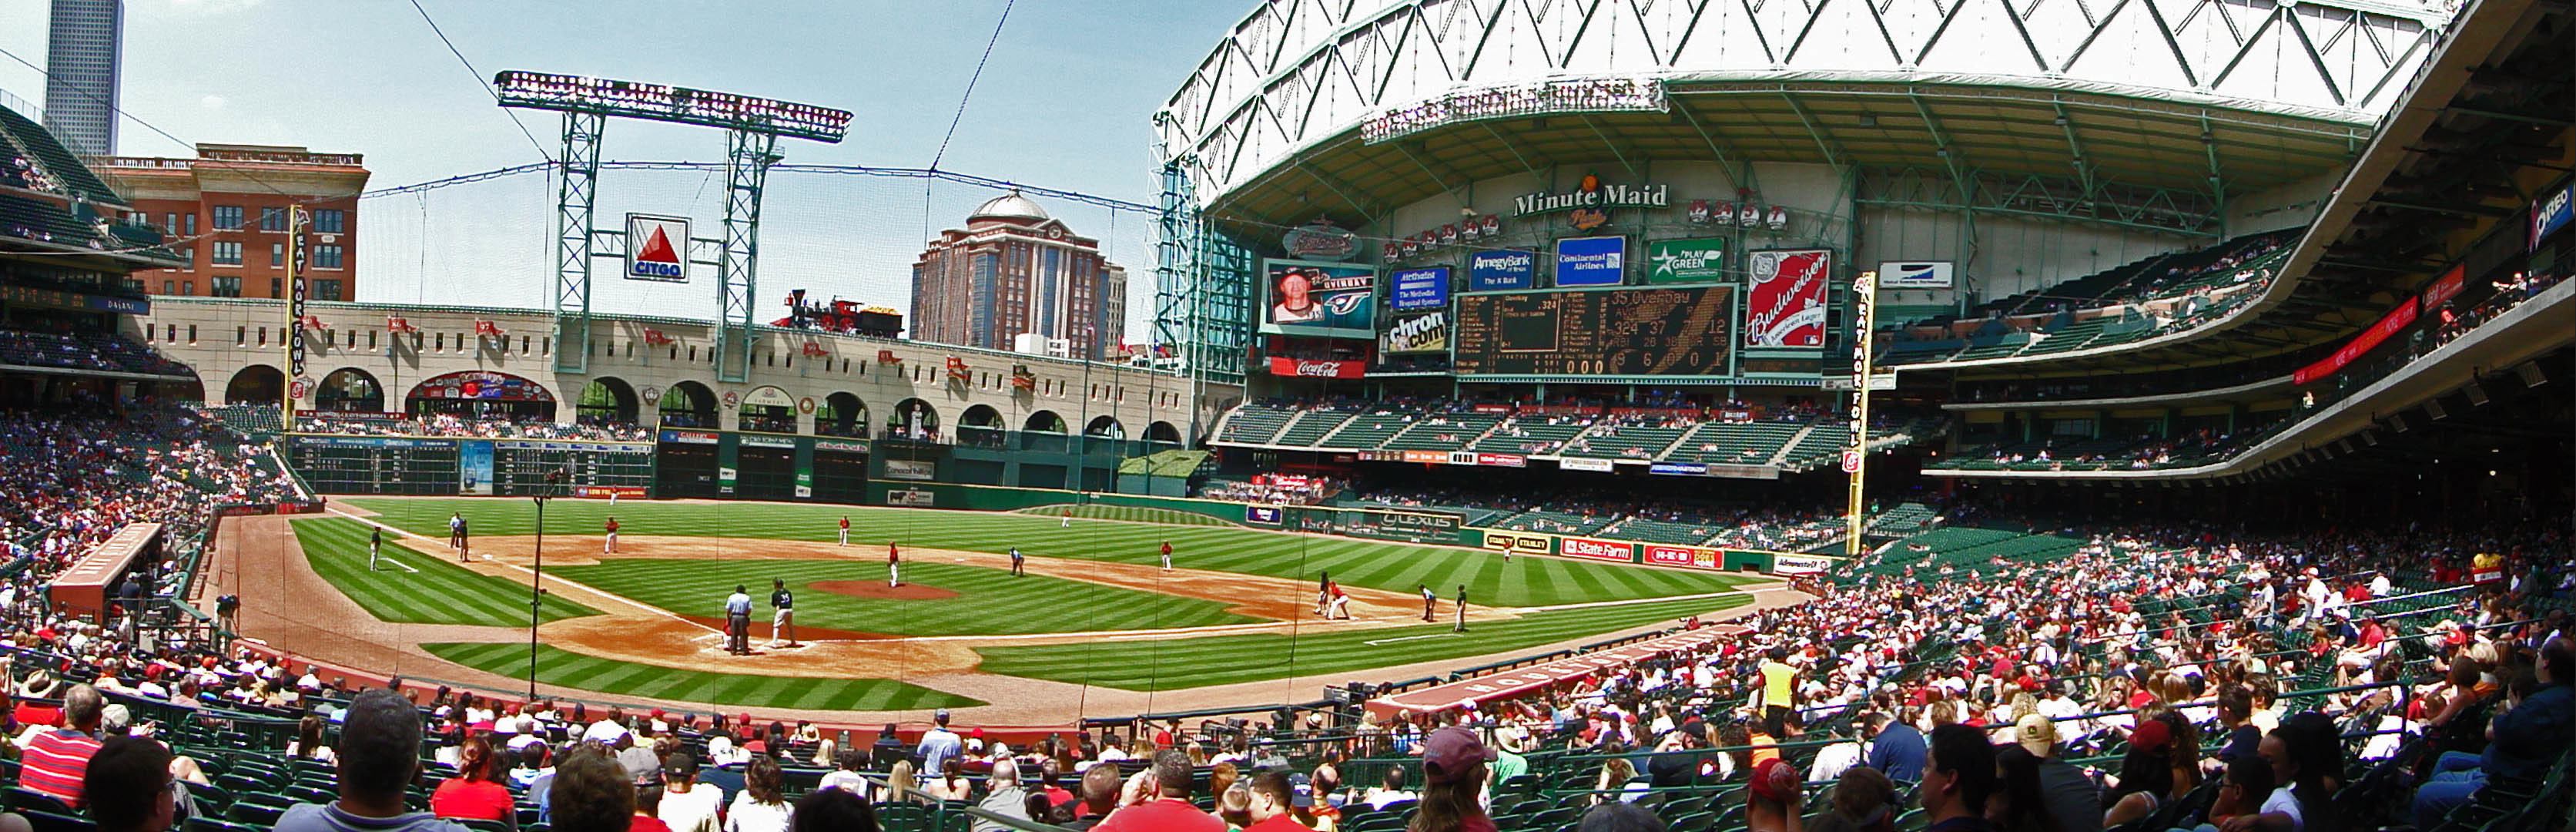 Easter Saturday Fanfest at Minute Maid Park.